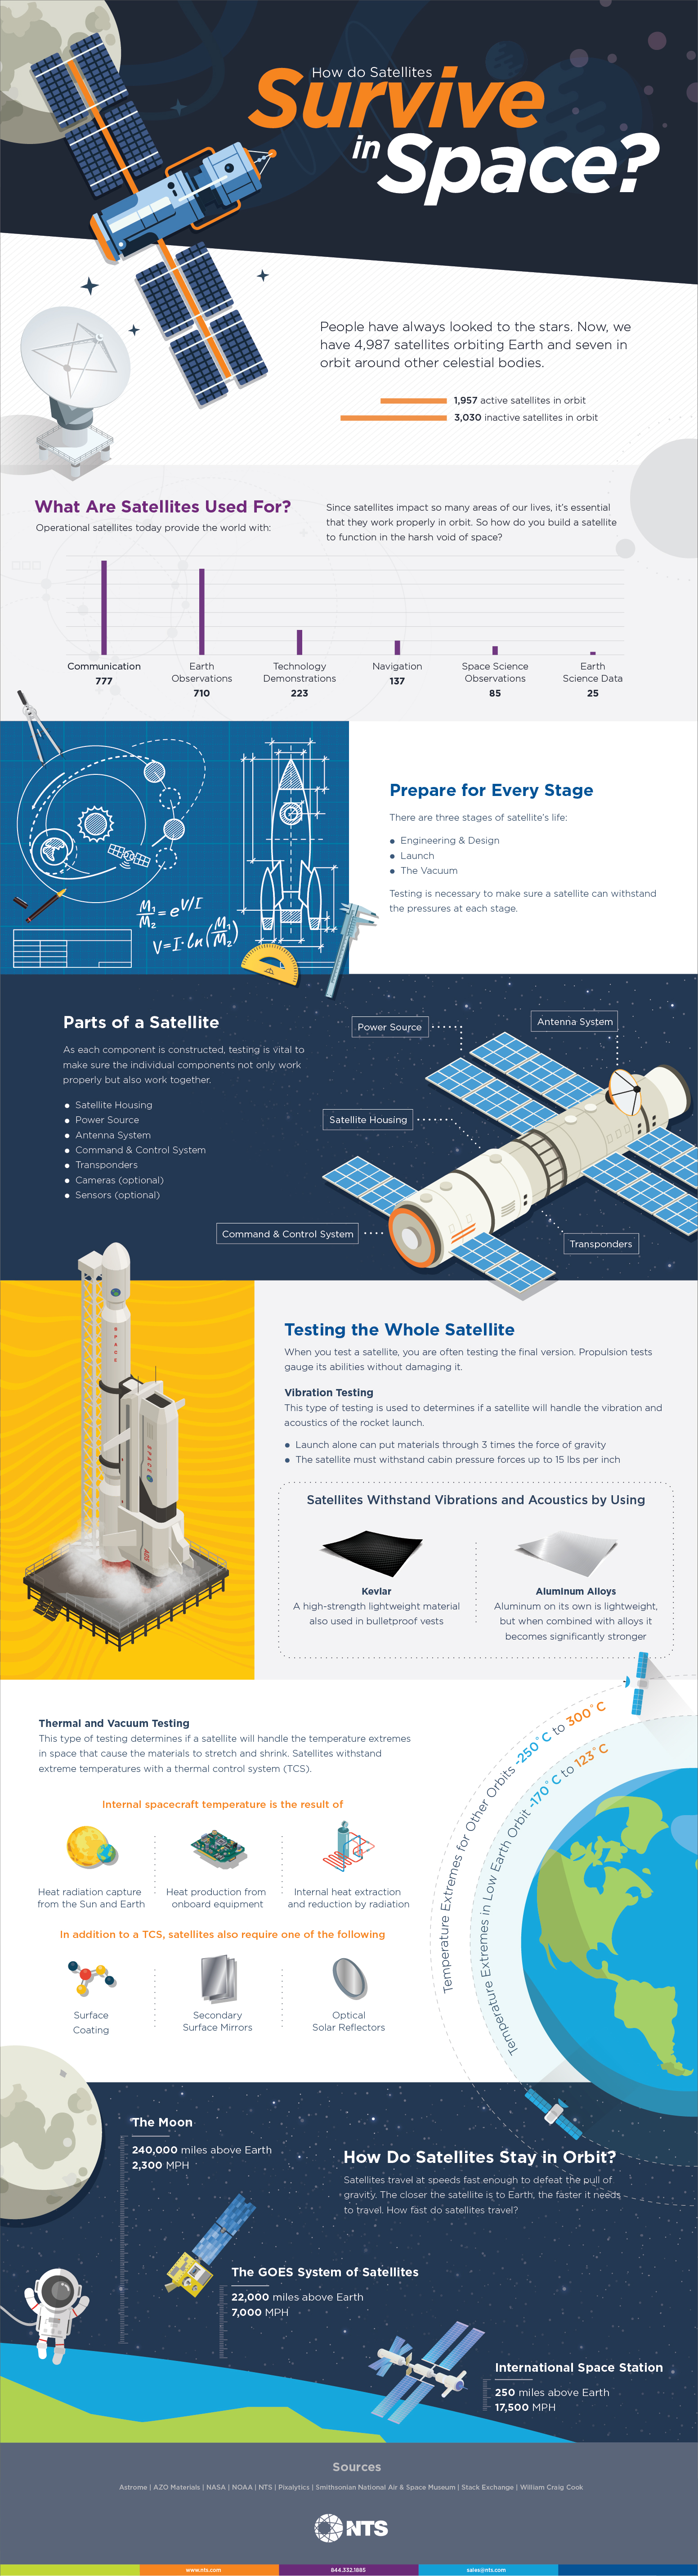 how do satellites withstand conditions of space